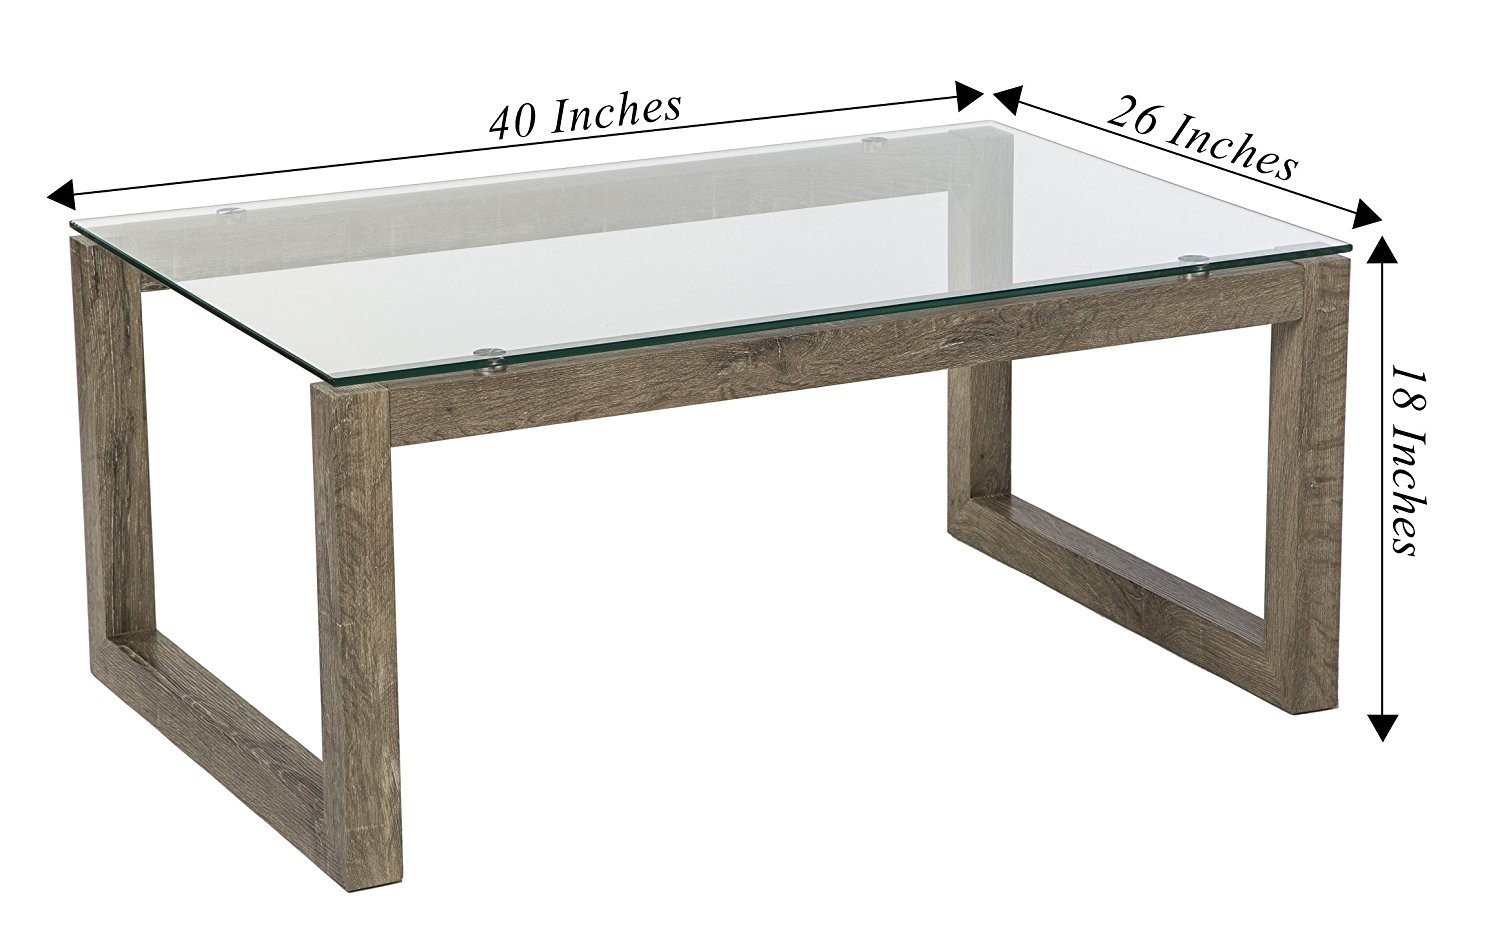 indoor multi function accent table study computer desk bedroom tables living room modern style end sofa side coffee oak hampton bay spring haven collection small corner solid door